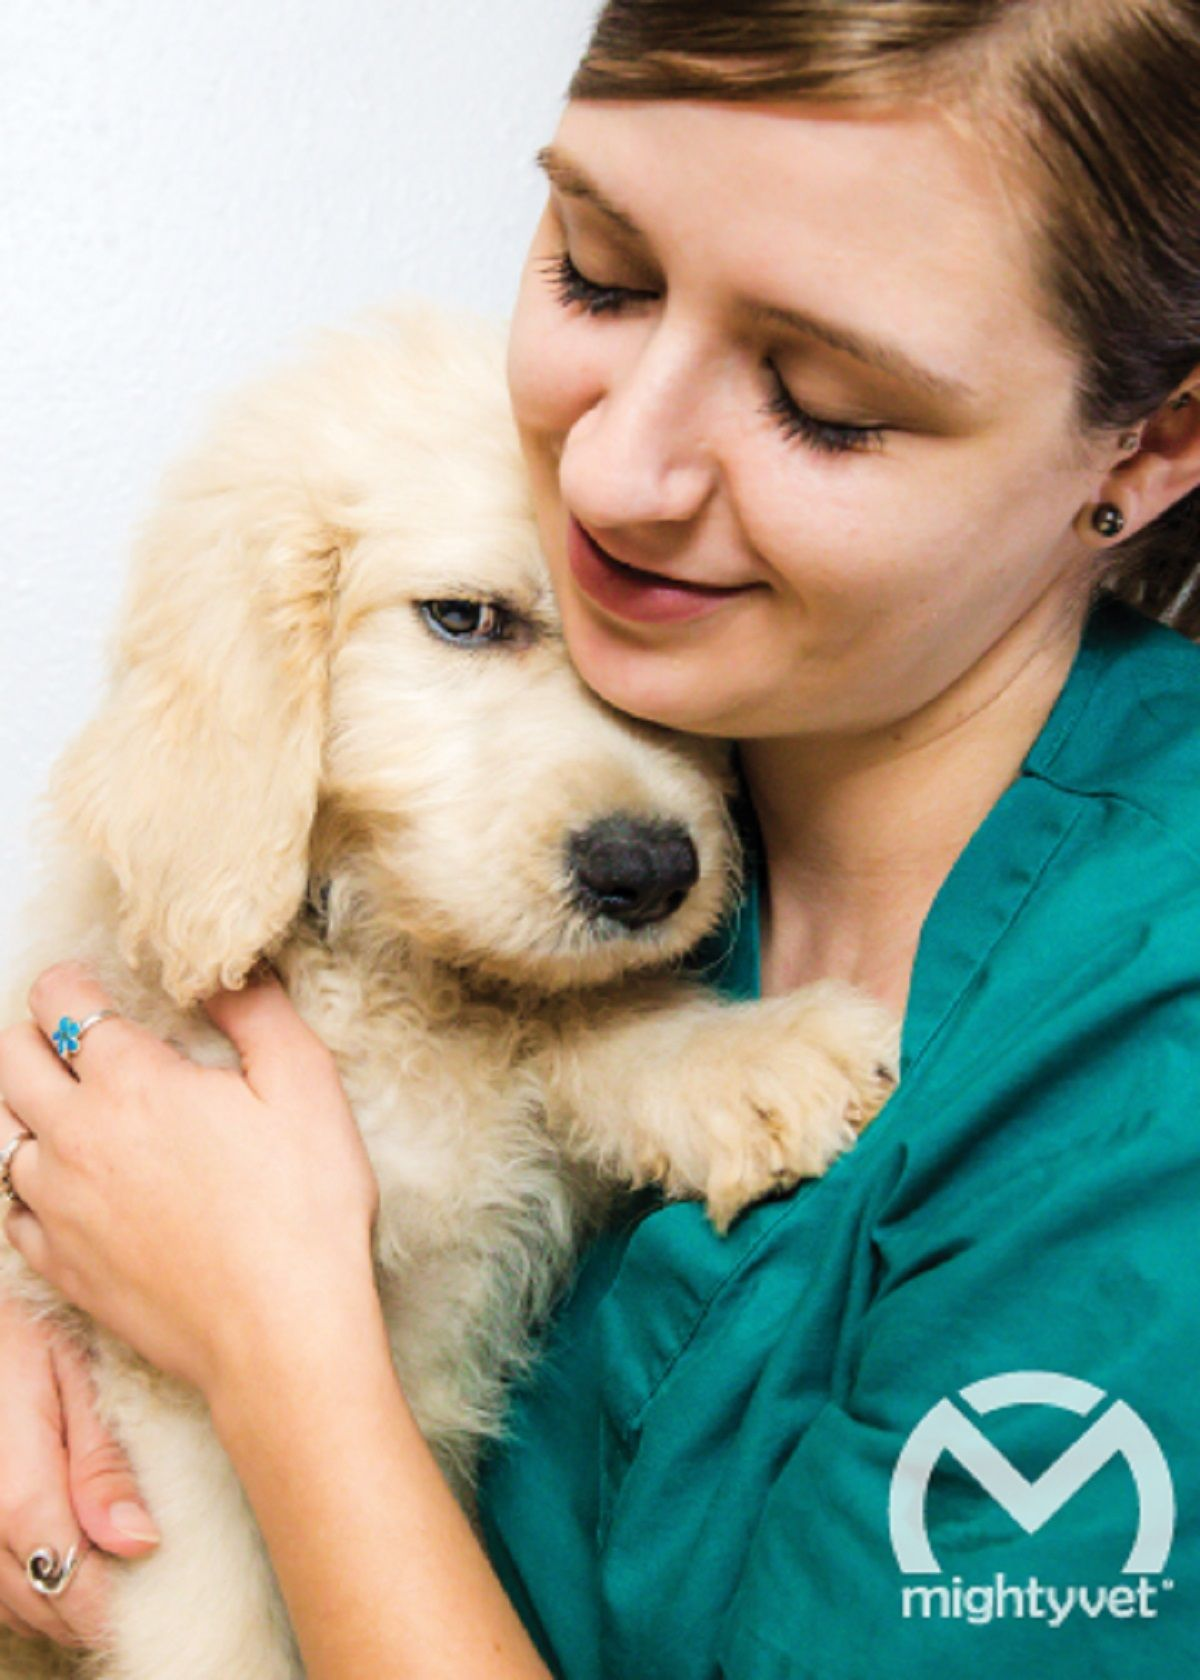 Mightyvet Changing An Industry Pets Veterinary Care Work Culture